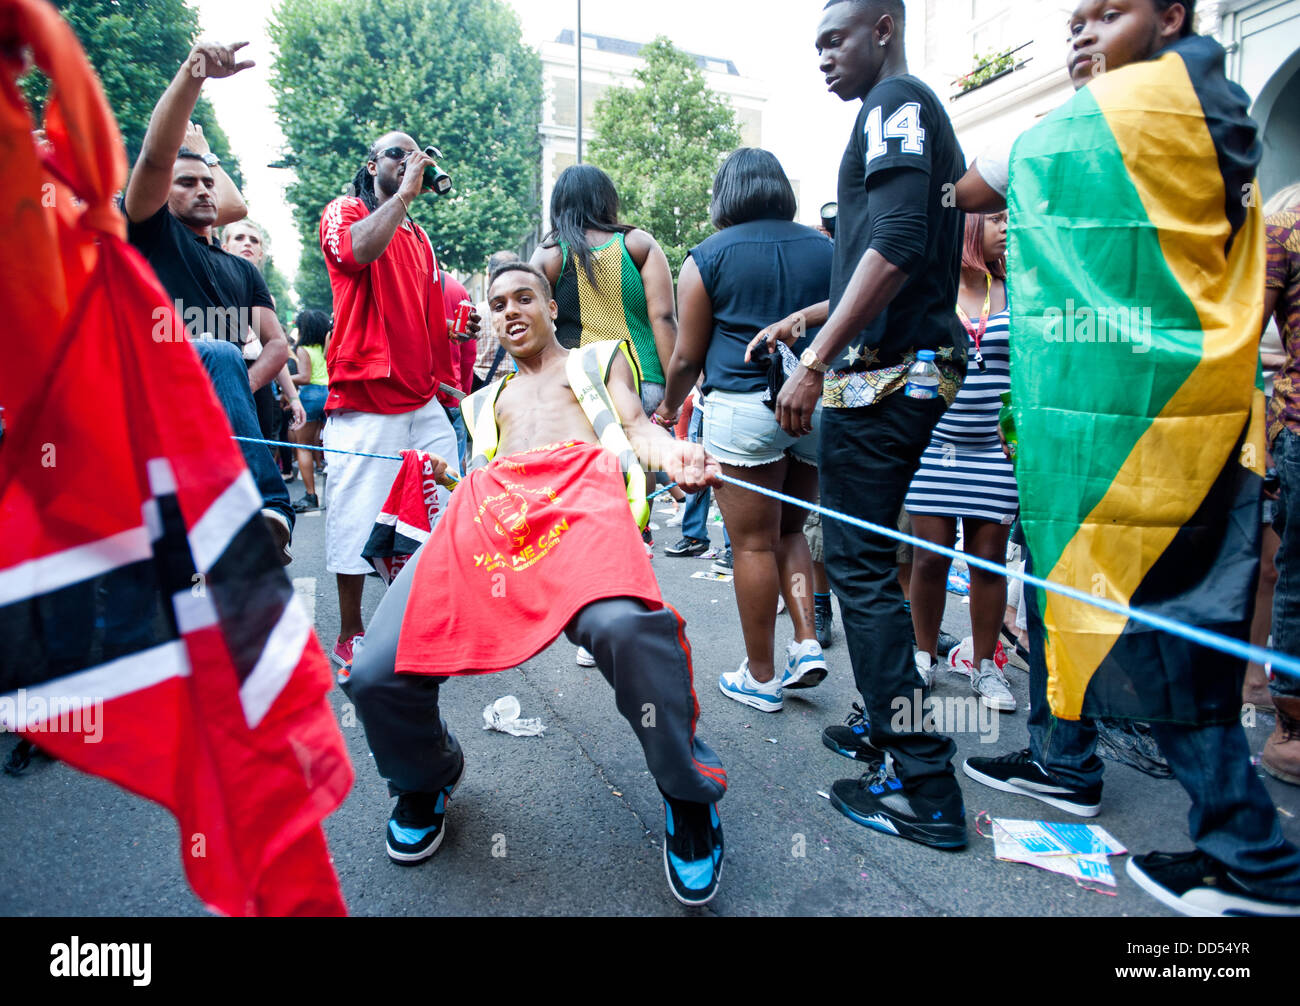 London, UK - 26 August 2013:  a young man dances during the annual parade at the Notting Hill Carnival. Stock Photo